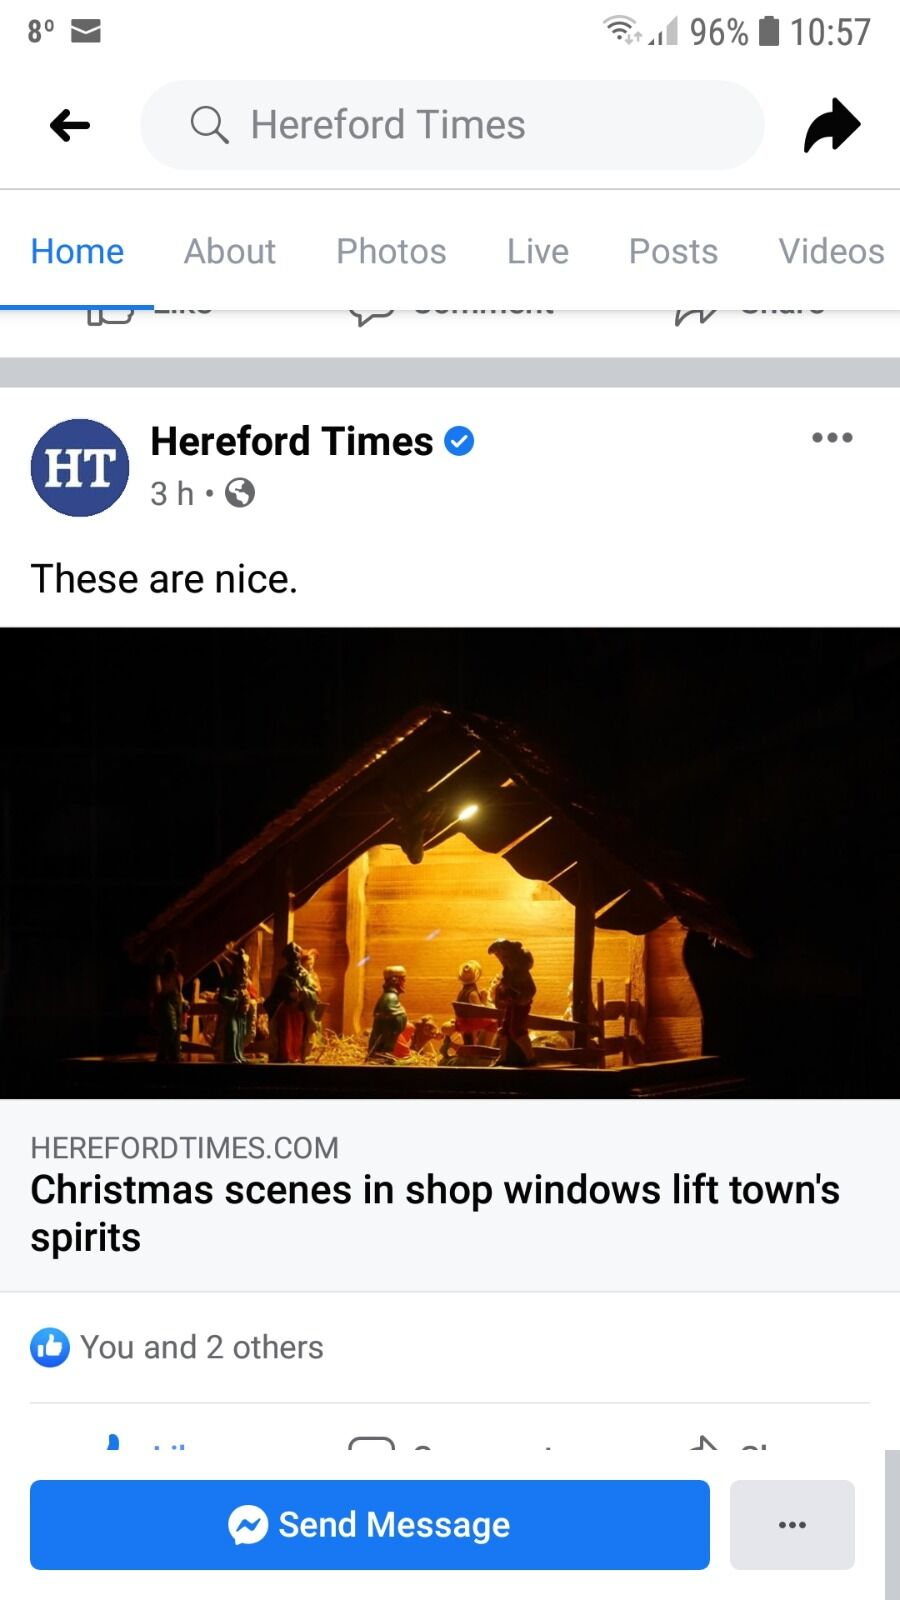 Kington Christmas Windows in the Hereford Times